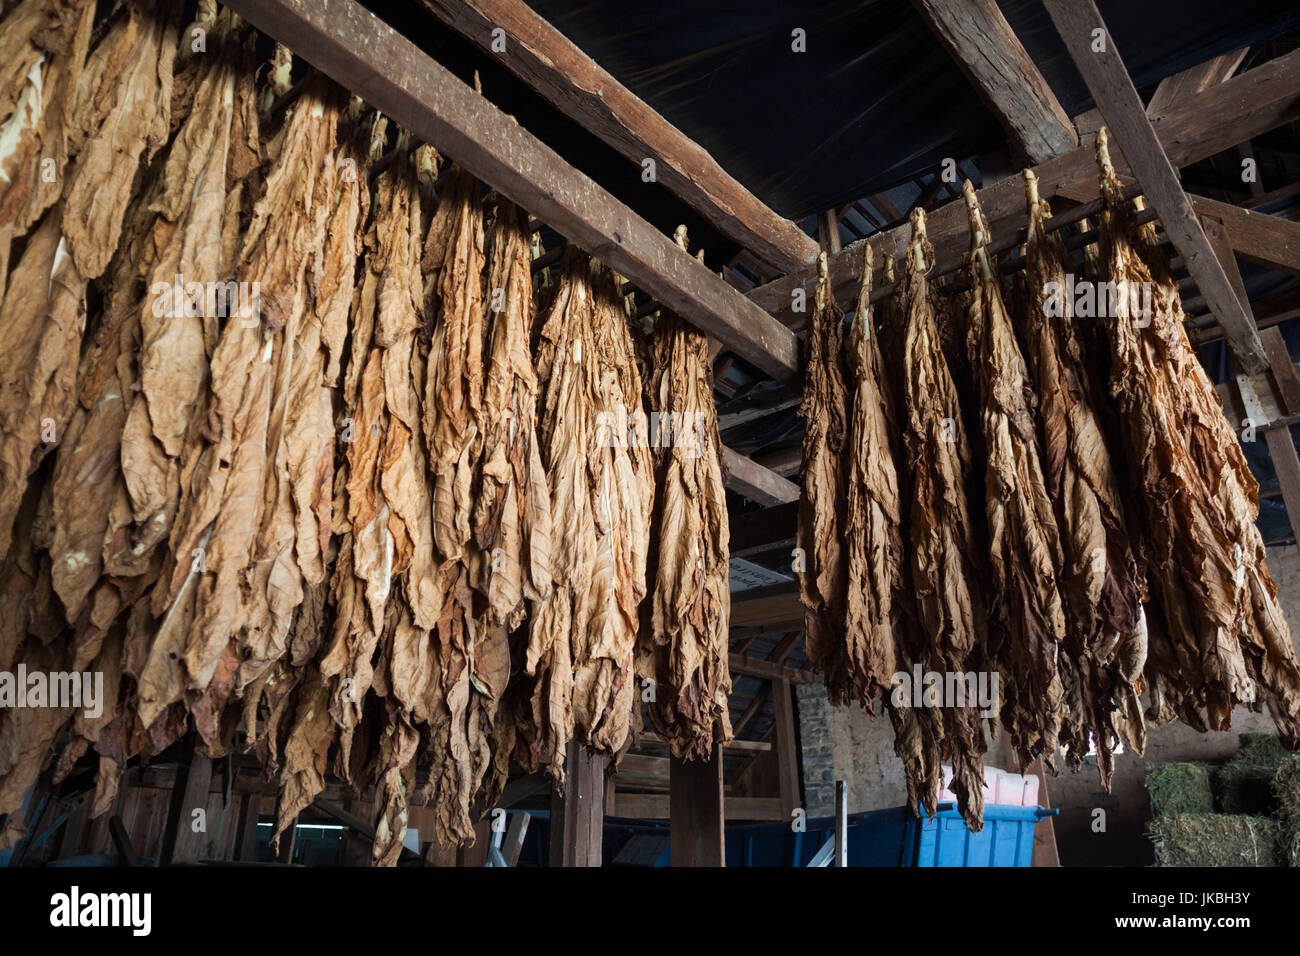 USA, Pennsylvania, Pennsylvania Dutch Country, Lancaster, Amish Farm and House Museum, curing tobacco - Stock Image